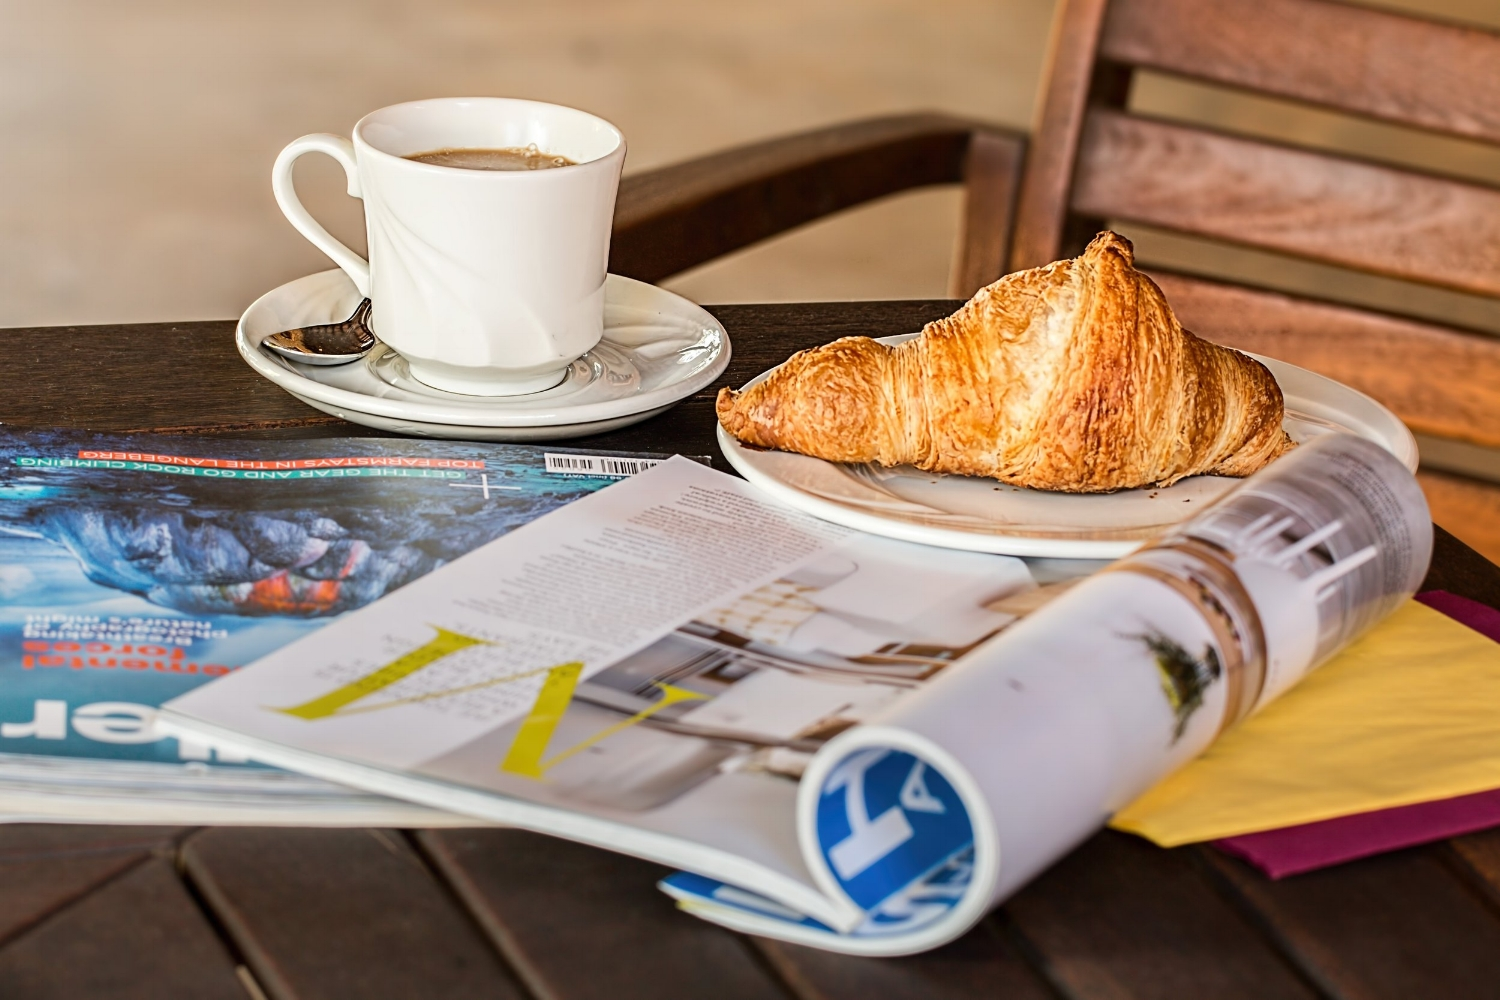 croissant and coffee.jpeg